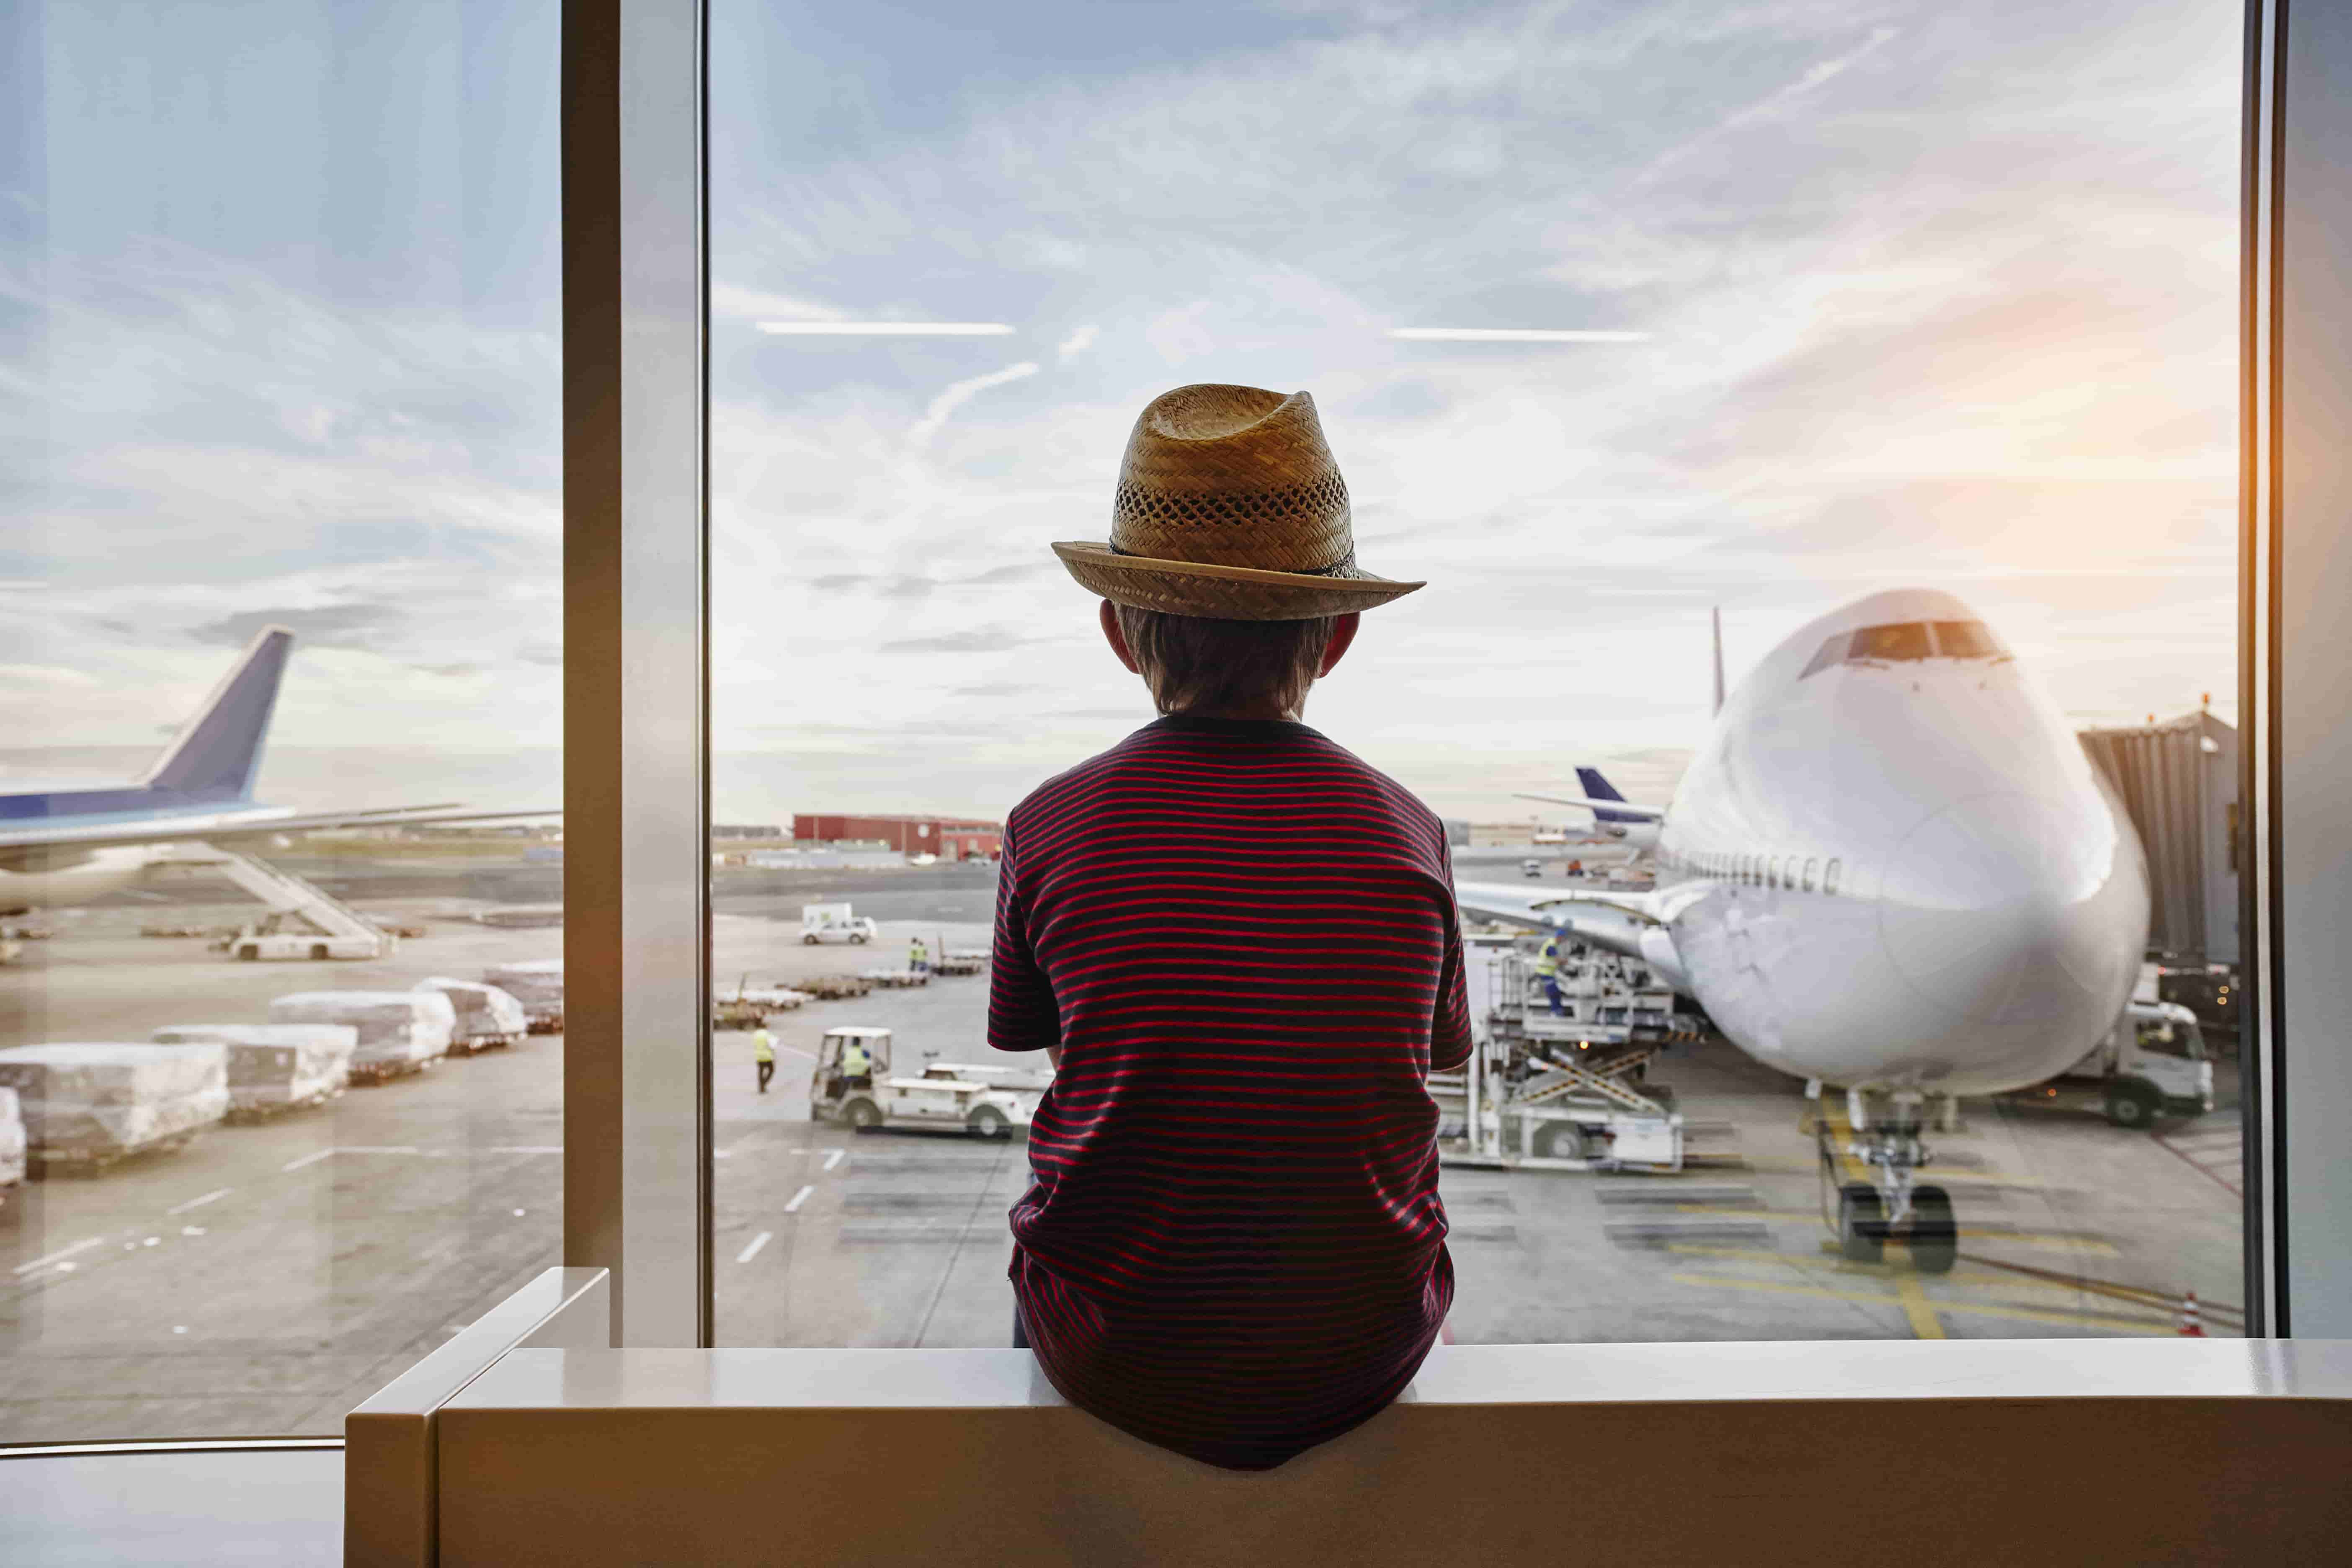 child watching airplanes